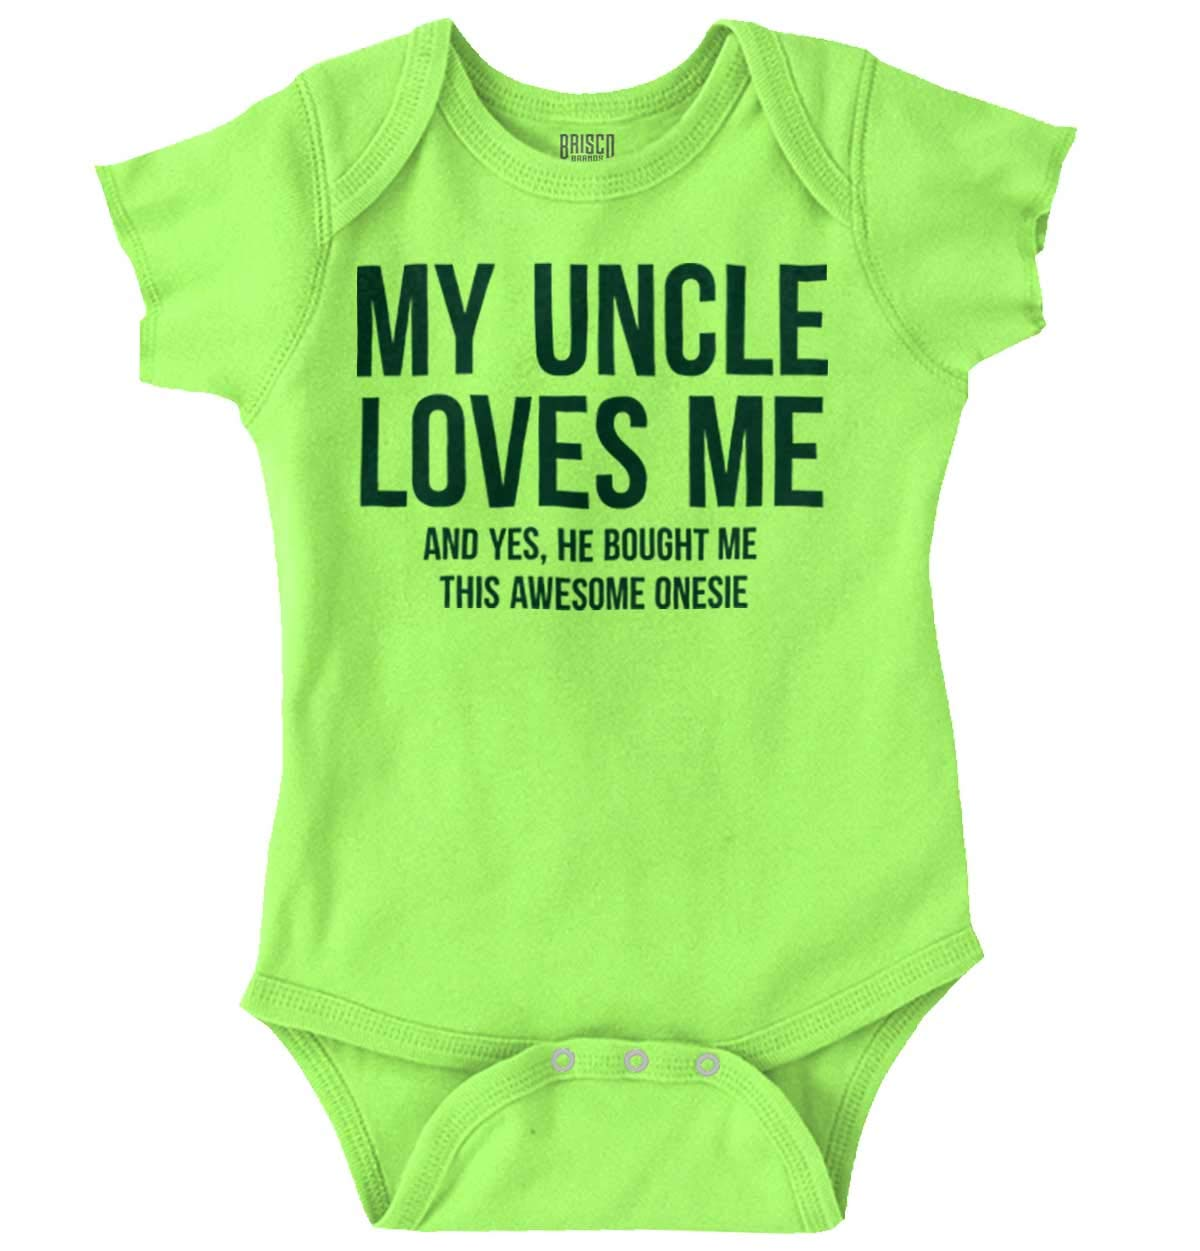 My Uncle Loves Me and Bought Me This Awesome Onesie | Funny Romper Bodysuit